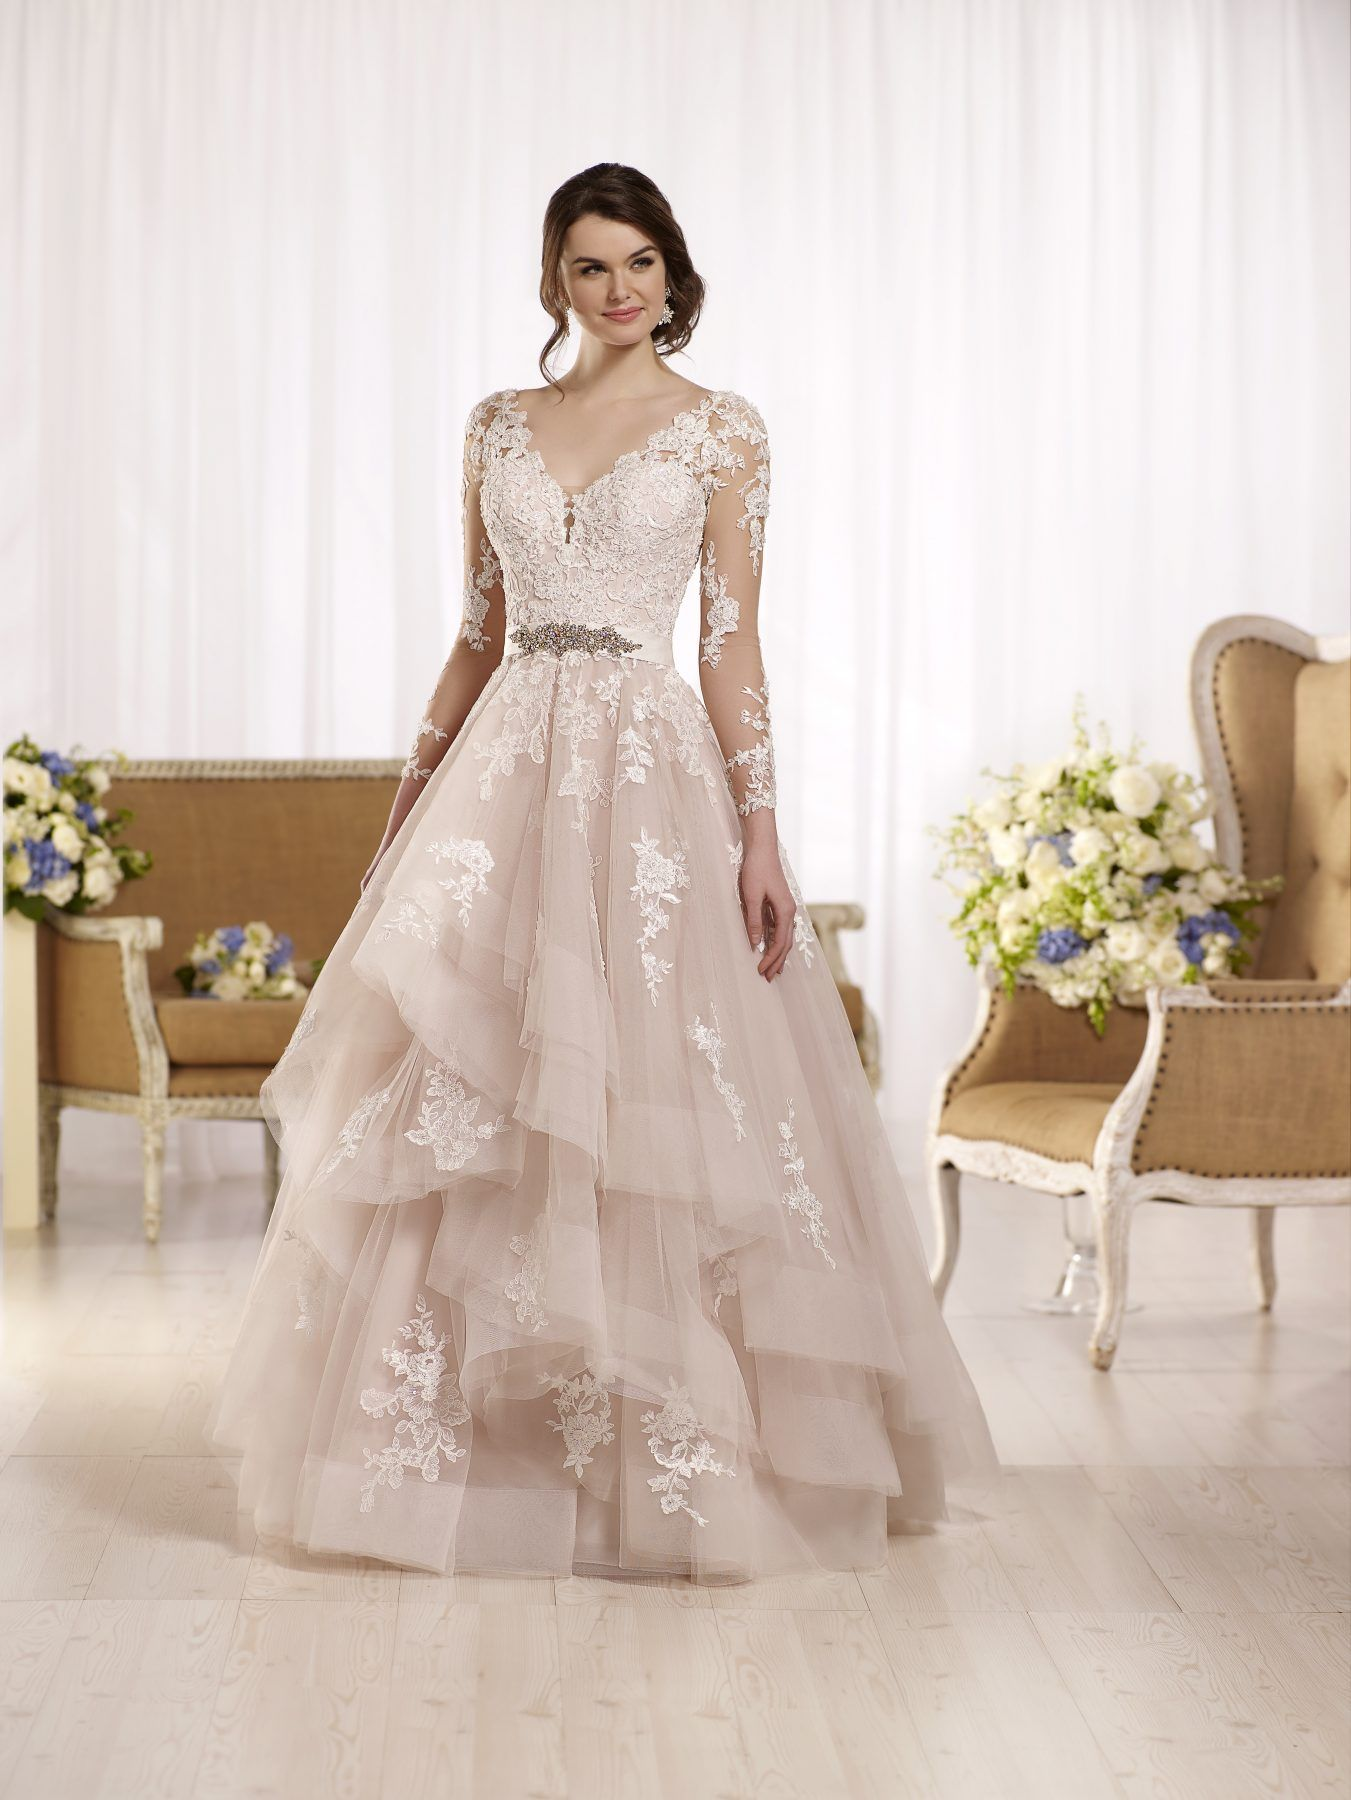 Long Sleeve Illusion V Neckline Lace Ball Gown Wedding Dress With Attached Beaded Belt Kleinfeld Bridal Essense Of Australia Wedding Dresses Wedding Dress Sleeves Wedding Dresses